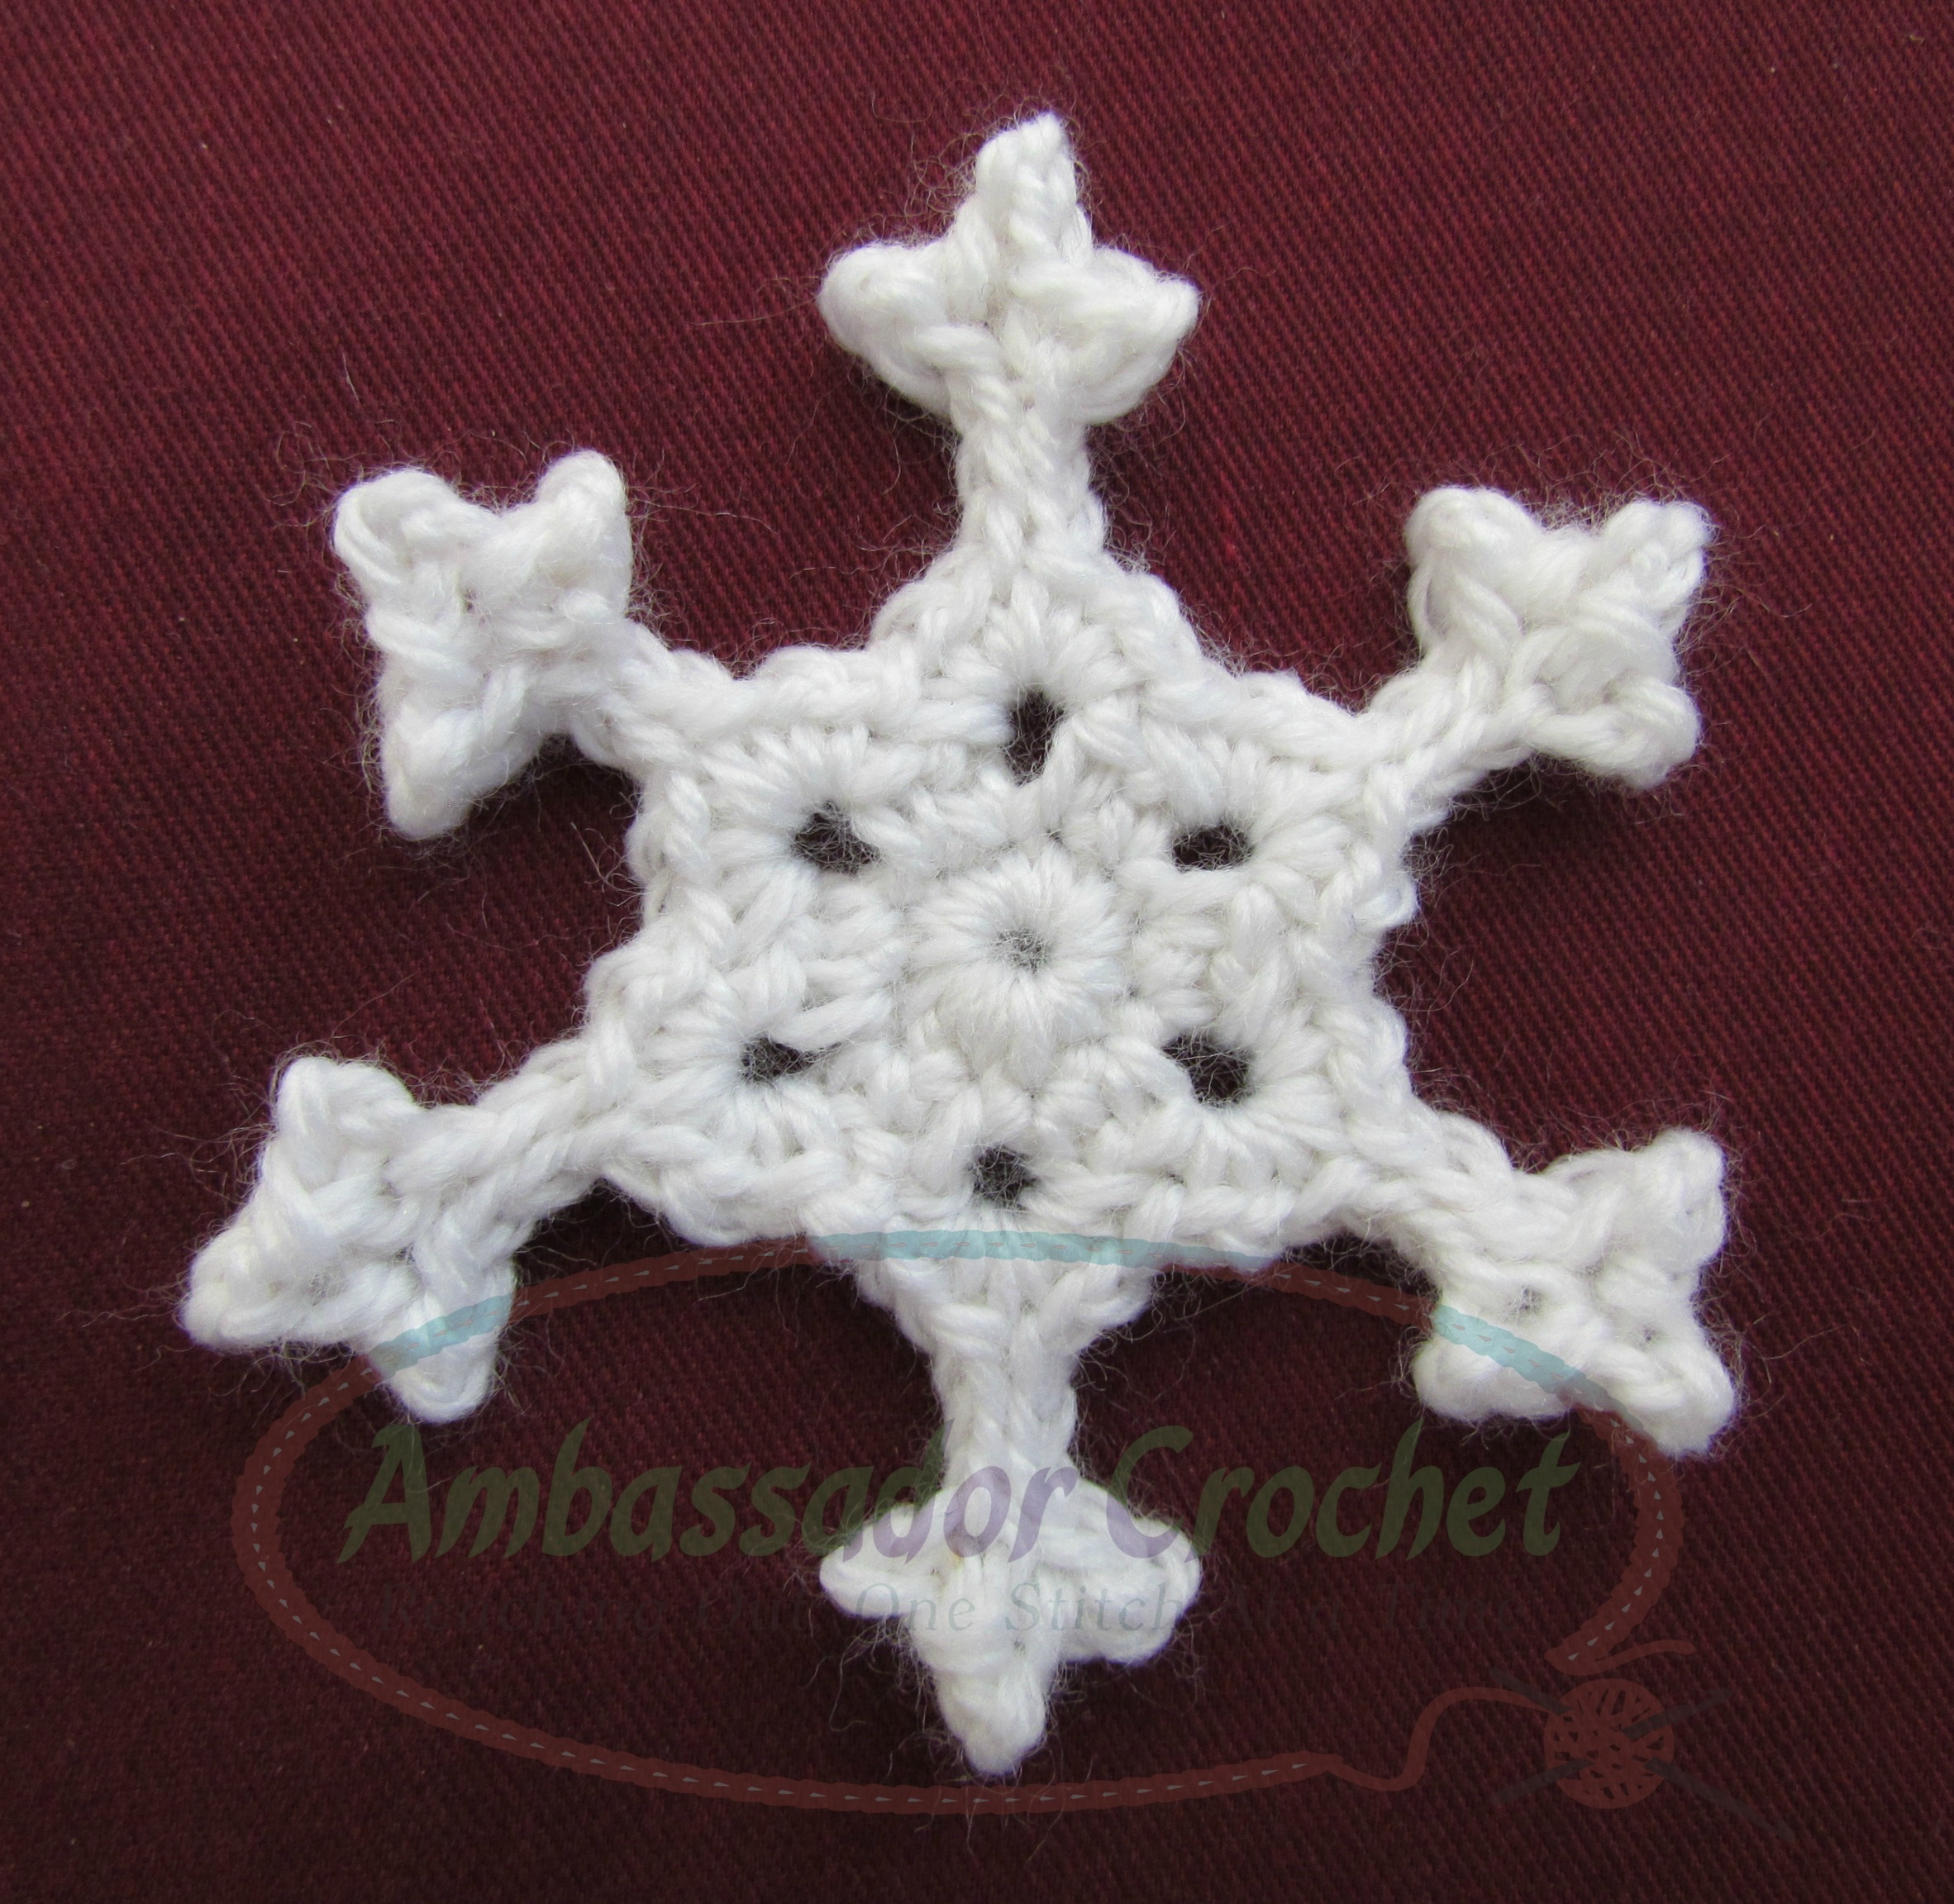 Crochet Snowflake Patterns Free Easy : Crocheted Snowflake Pattern - Ambassador Crochet ...